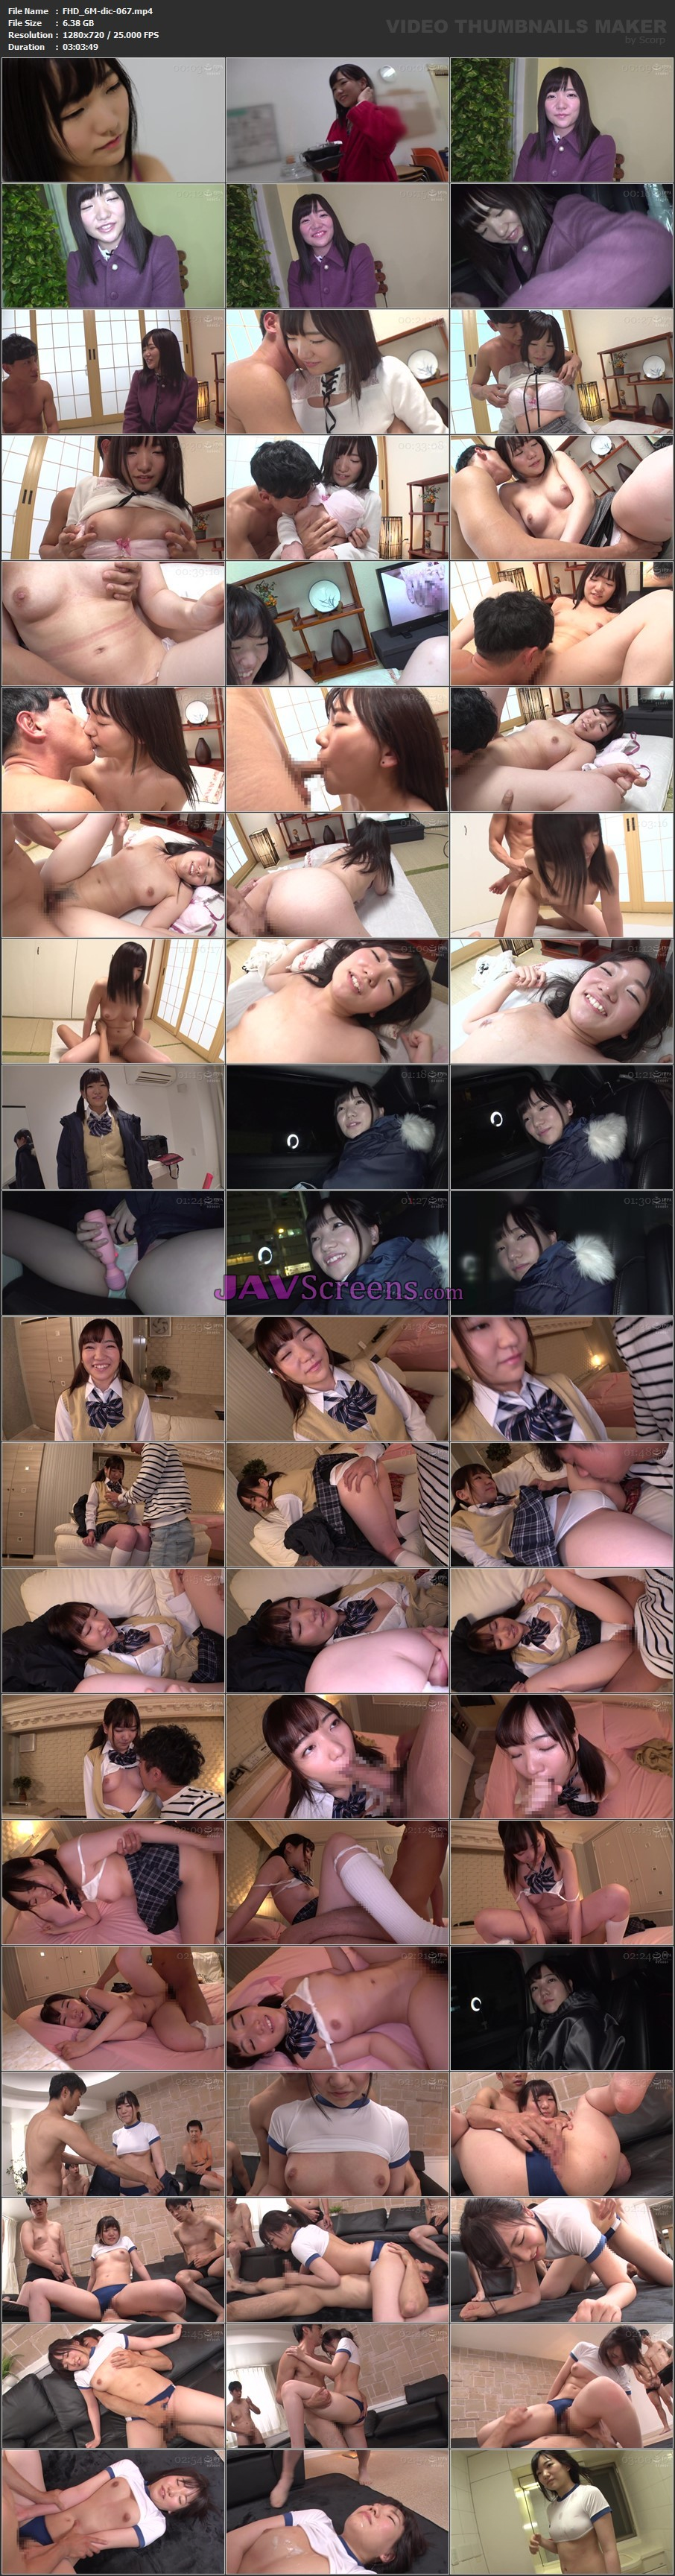 DIC-067.jpg - JAV Screenshot